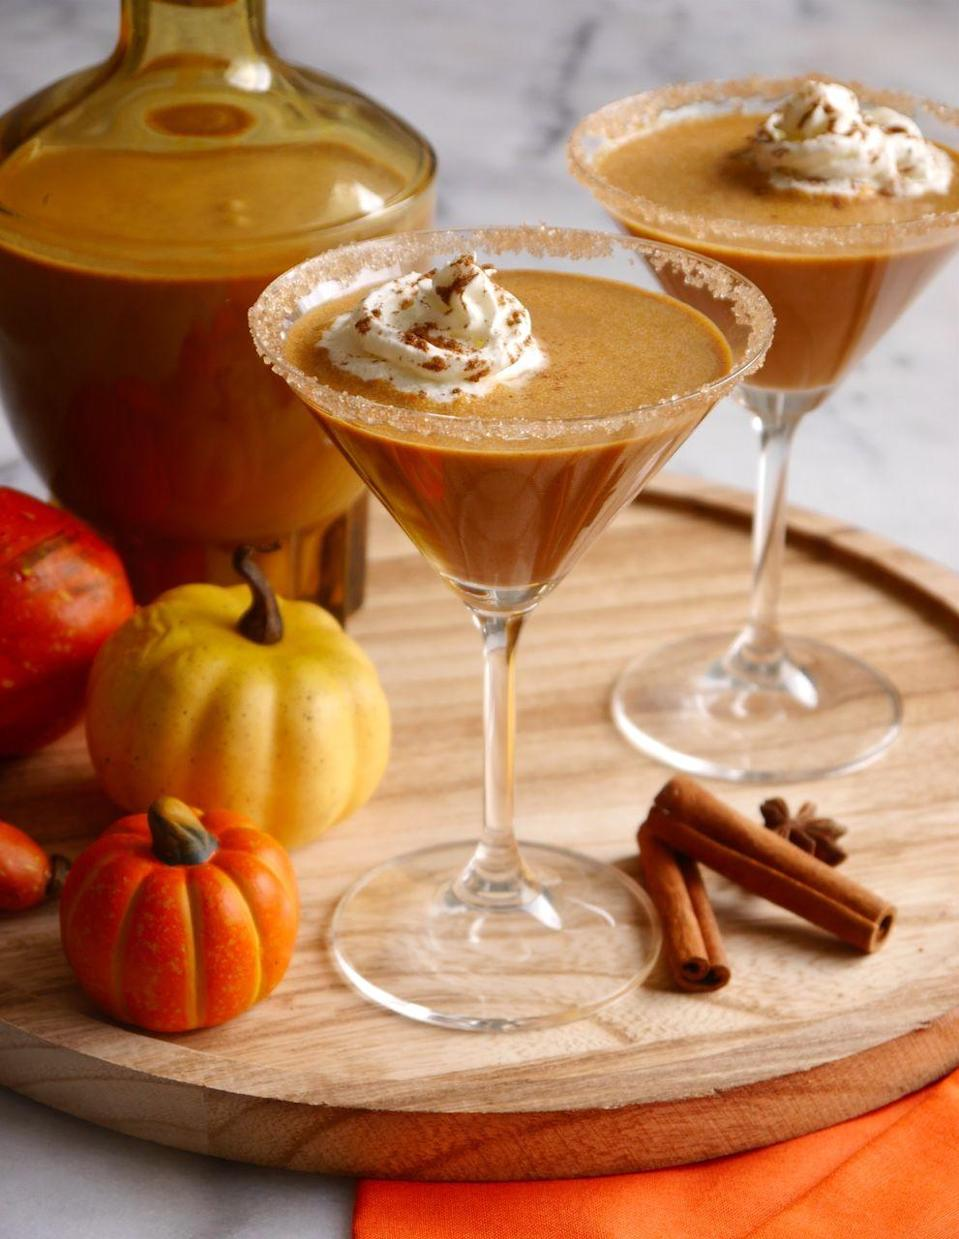 """<p>How do you make pumpkin spice better? Add homemade Irish cream for a cocktail that's totally worth the calorie splurge.<br></p><p><a class=""""link rapid-noclick-resp"""" href=""""https://www.blog.birdsparty.com/2018/09/homemade-pumpkin-spice-irish-cream.html"""" rel=""""nofollow noopener"""" target=""""_blank"""" data-ylk=""""slk:GET THE RECIPE"""">GET THE RECIPE</a></p>"""